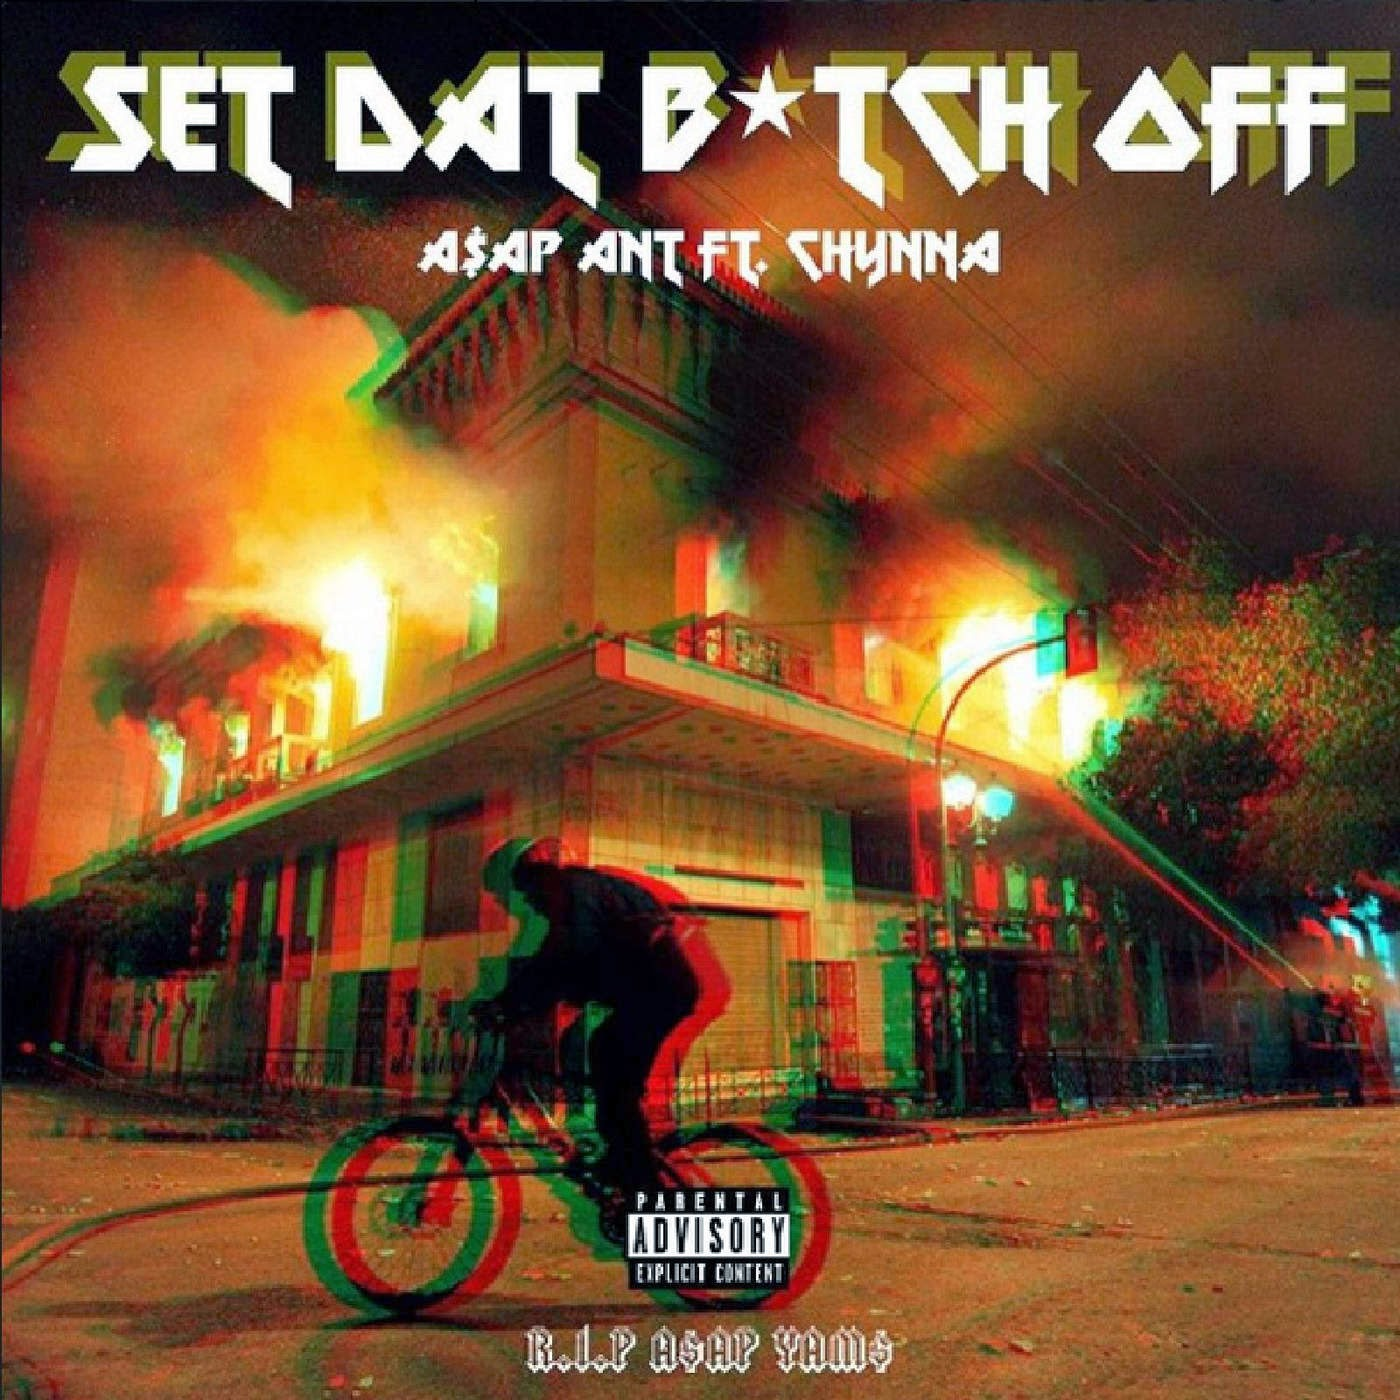 A$AP Ant - Set Dat Bitch Off (feat. Chynna) - Single Cover